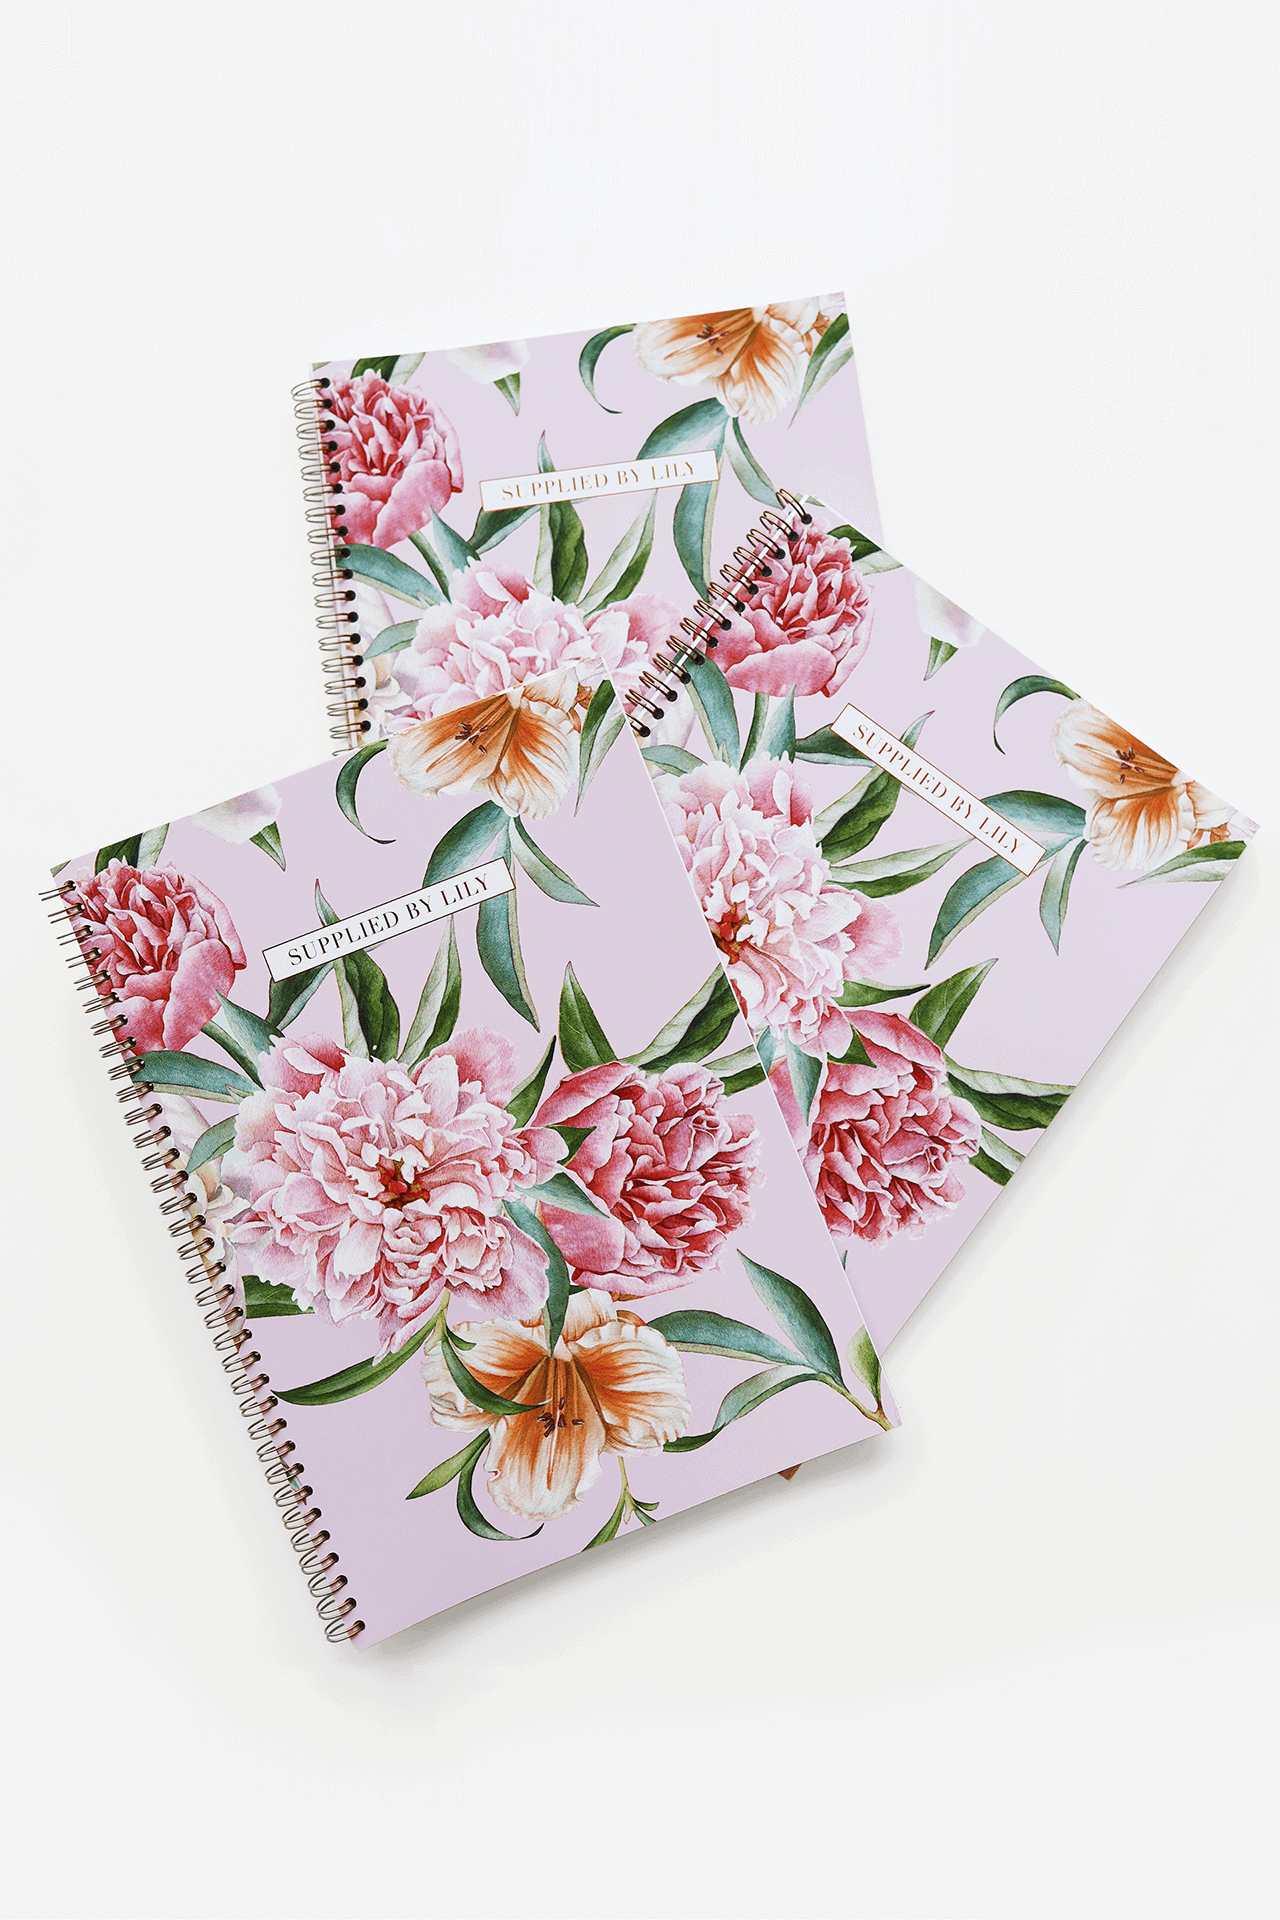 Supplied by Lily A4 Spiral Notebook in Luxurious Blush Floral-2